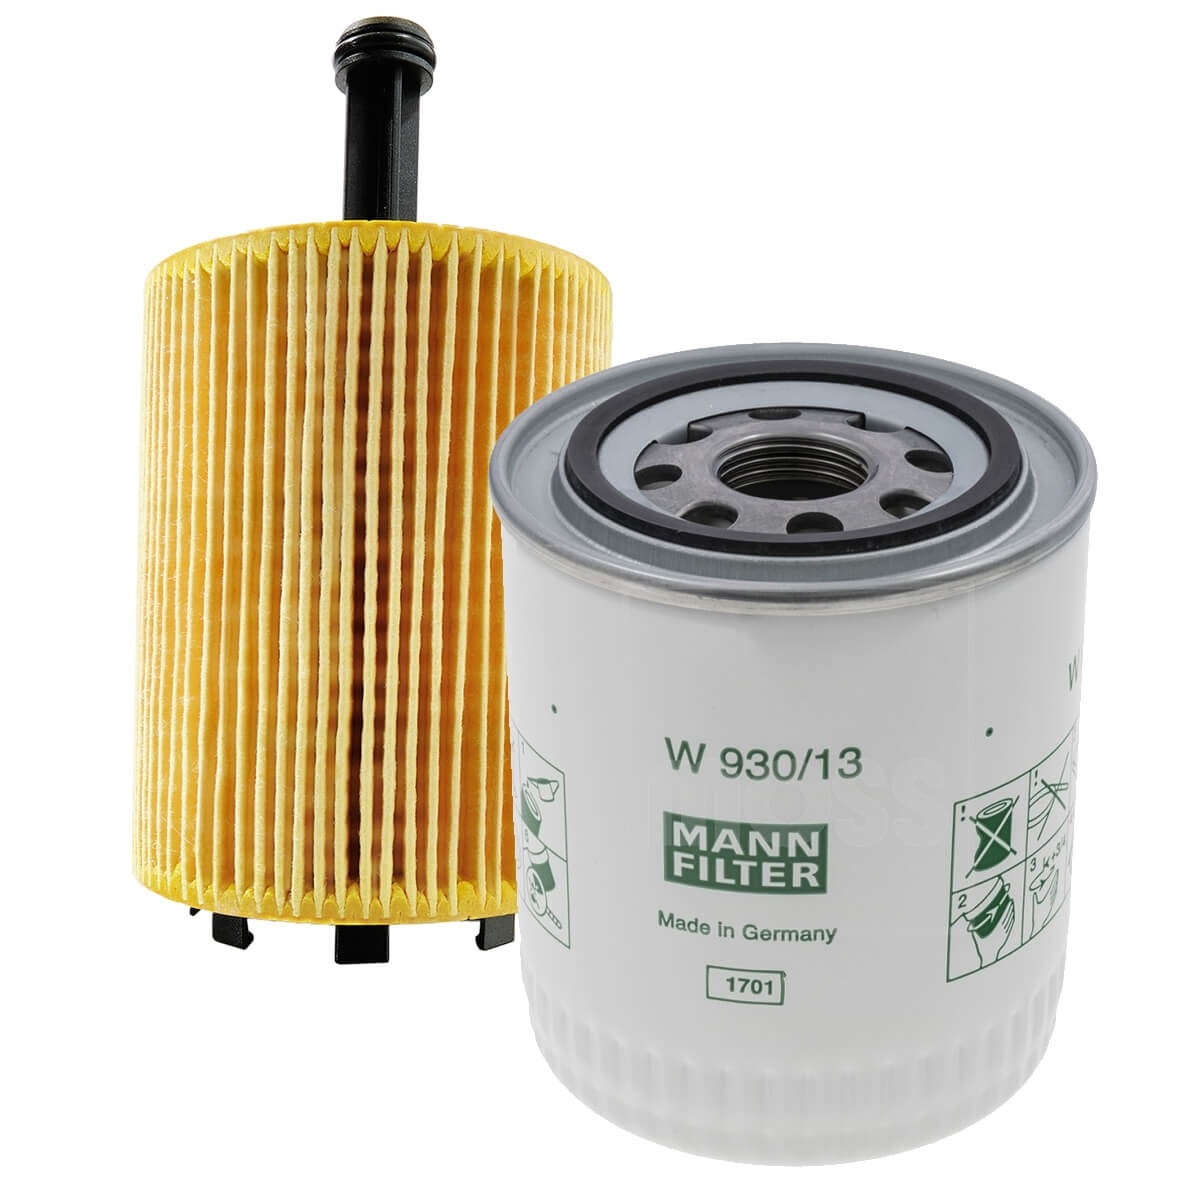 HONDA STREAM Oil Filter